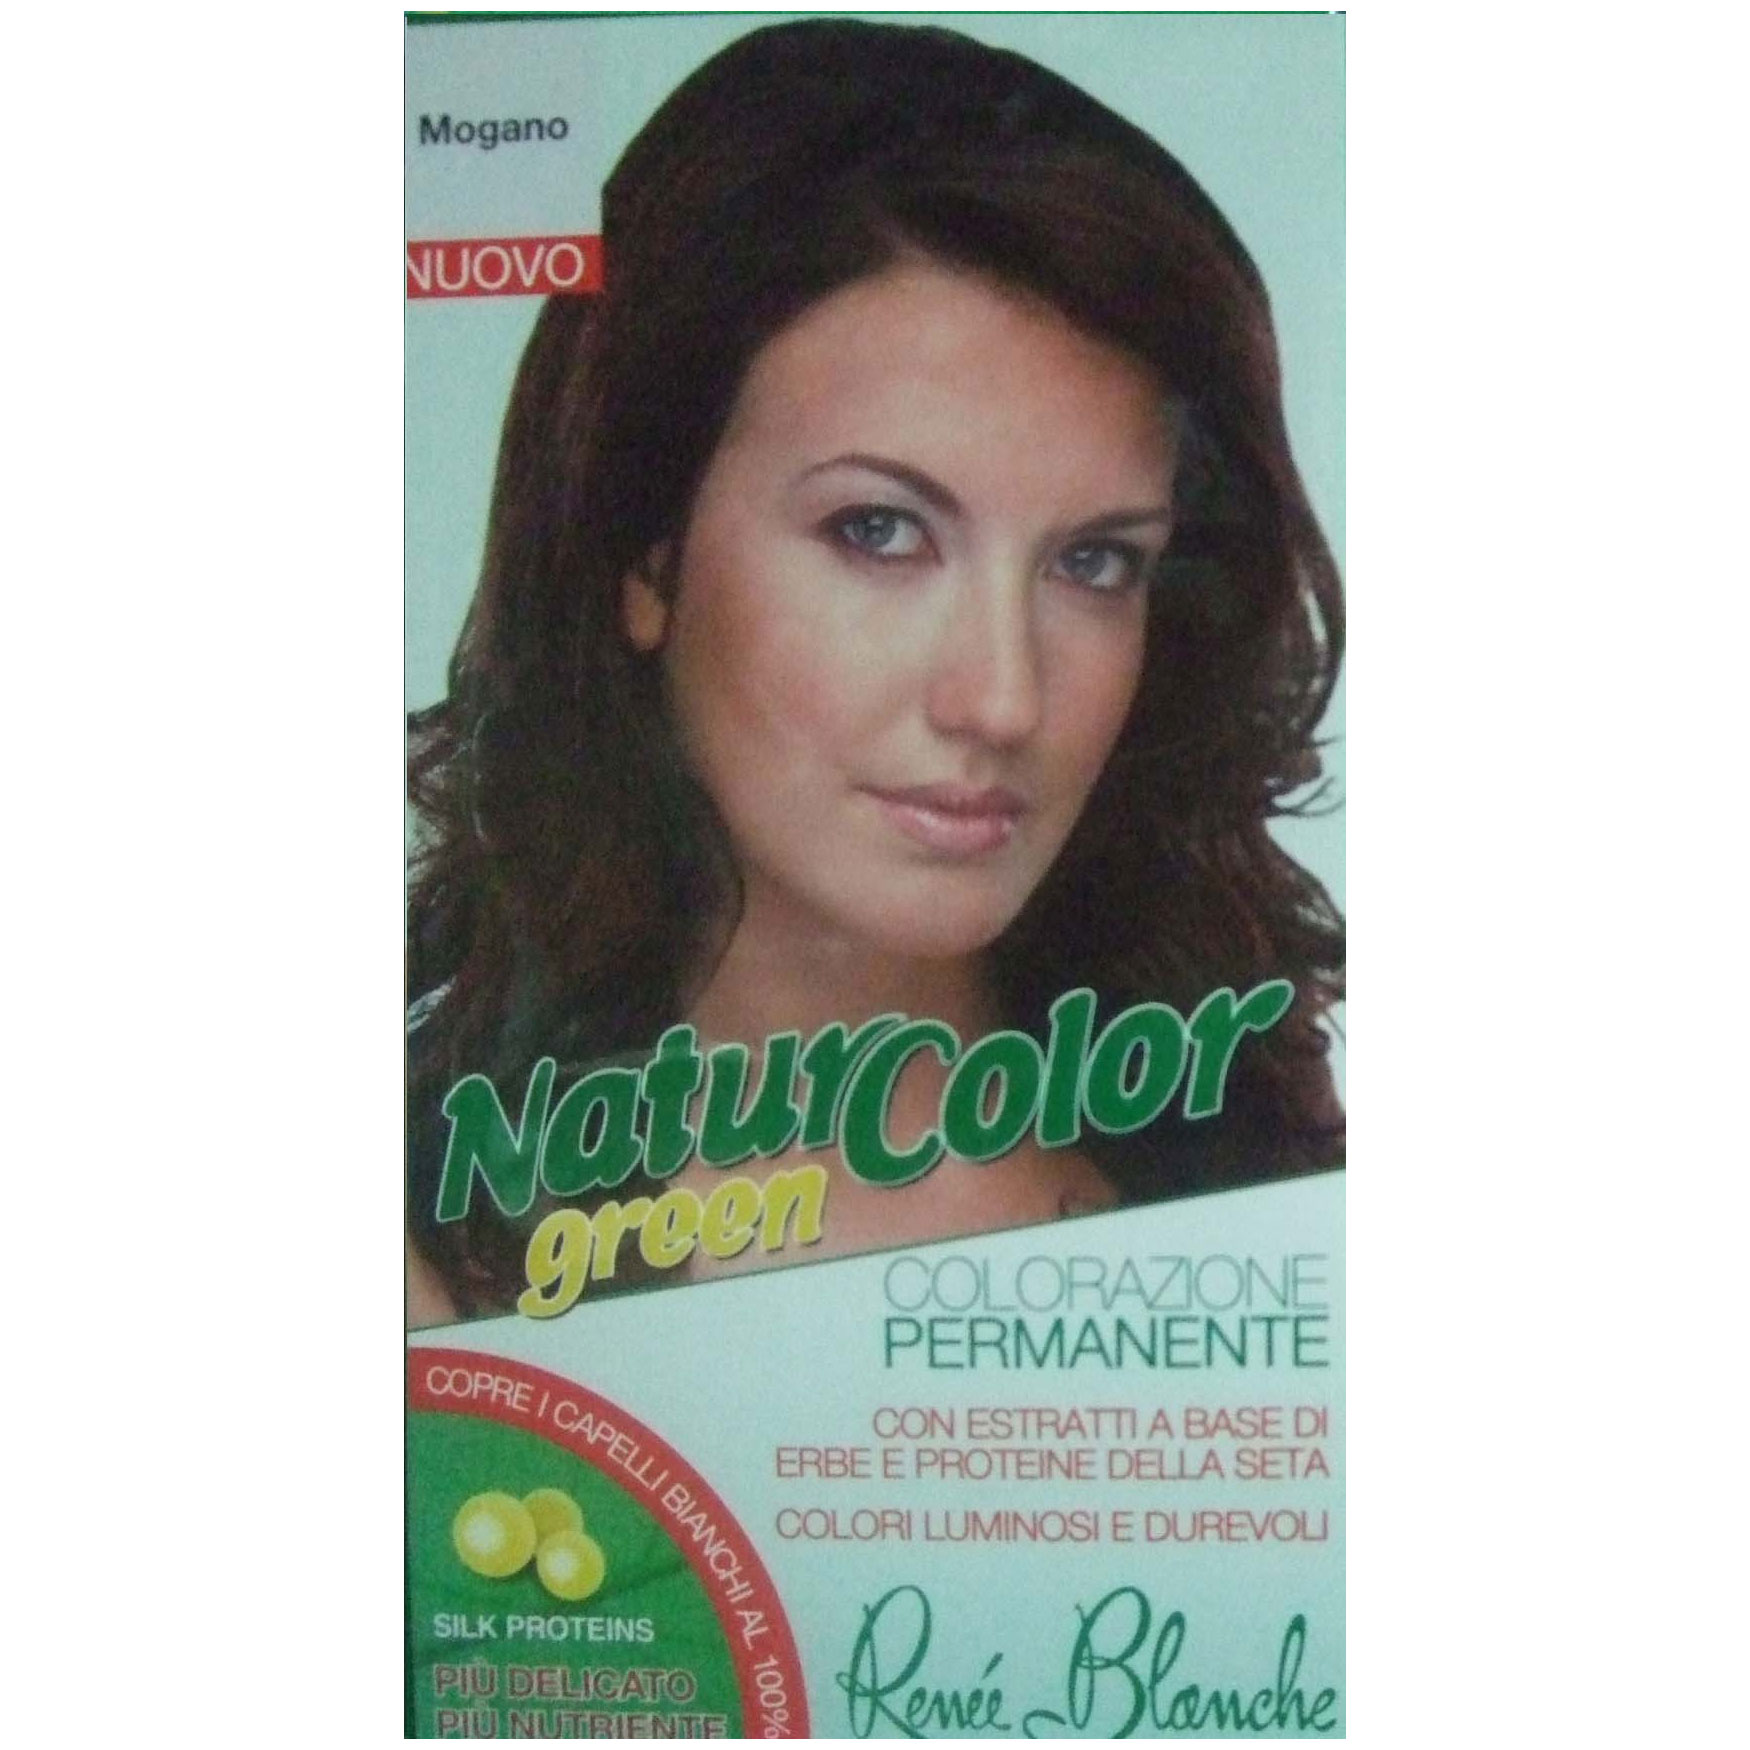 Renee Blanche Mogano Tinta Per Capelli Colorazione Permanente Naturale Natur Color Green